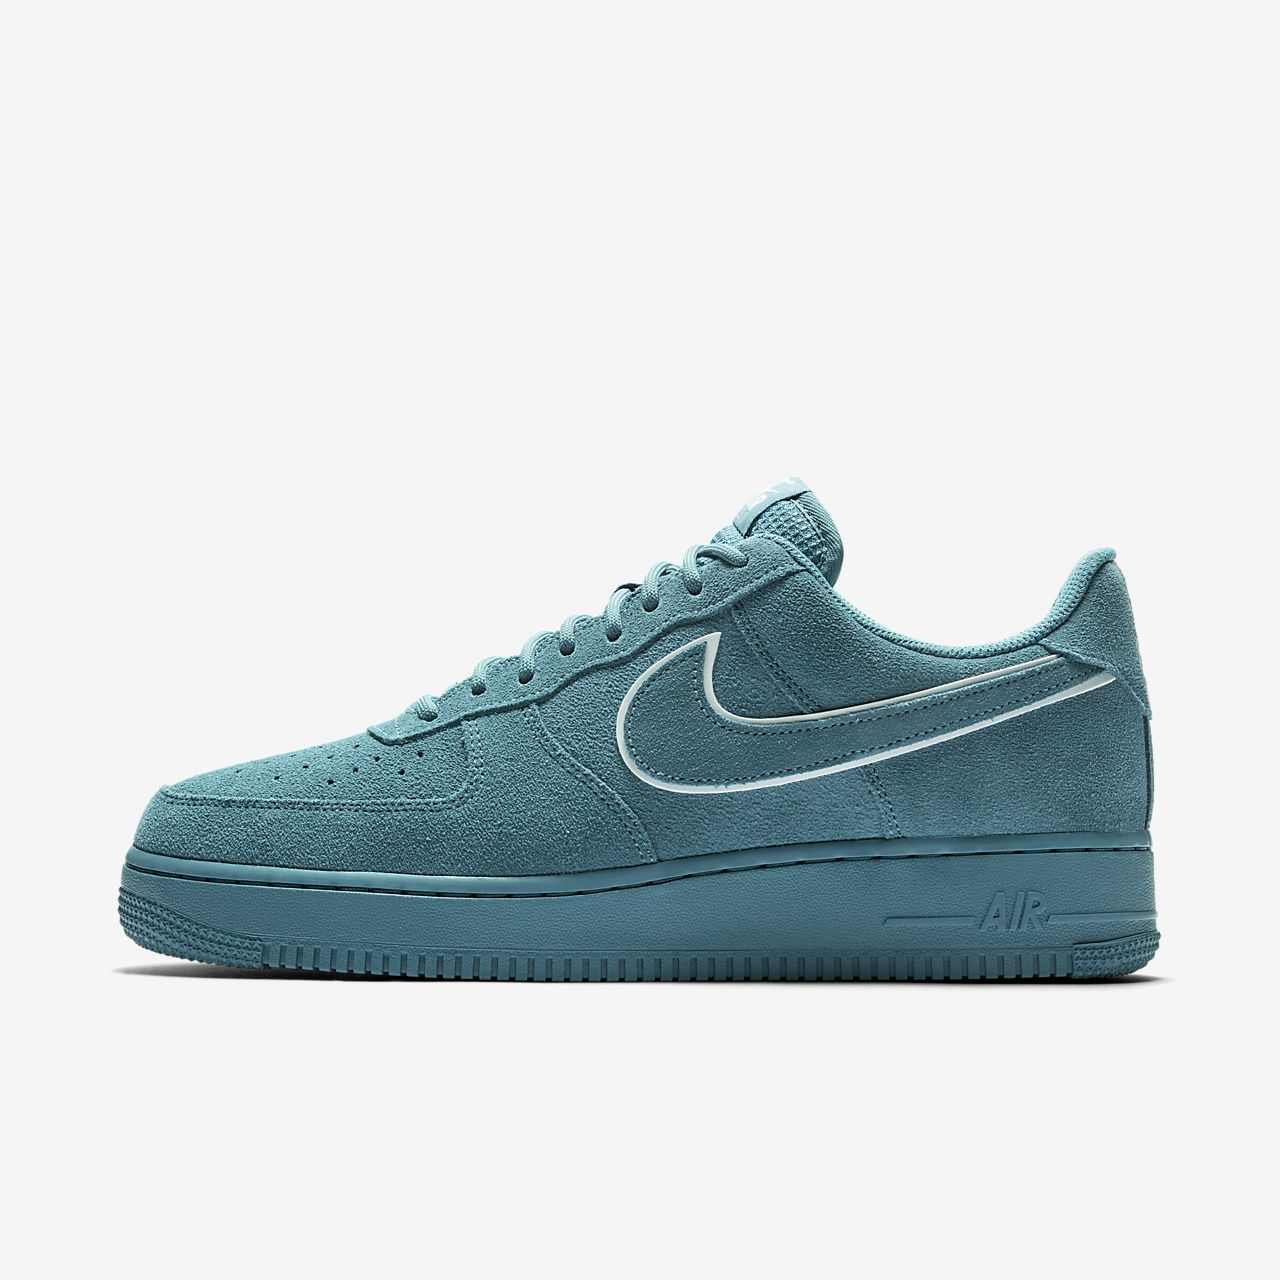 ... Chaussure Nike Air Force 1 07 LV8 Suede pour Homme